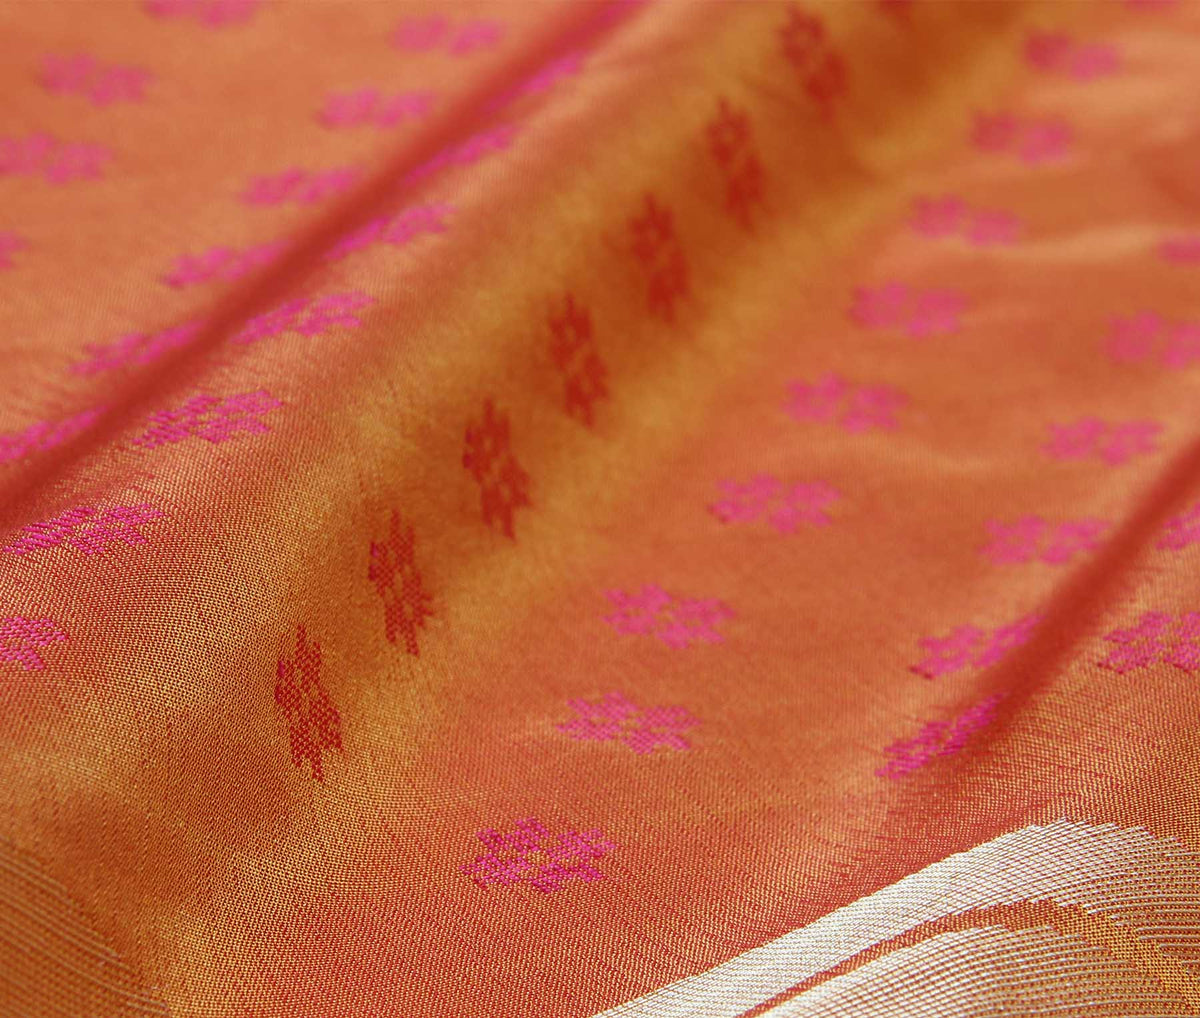 Rust Katan Silk Handwoven Banarasi saree with paisley konia (3) closeup